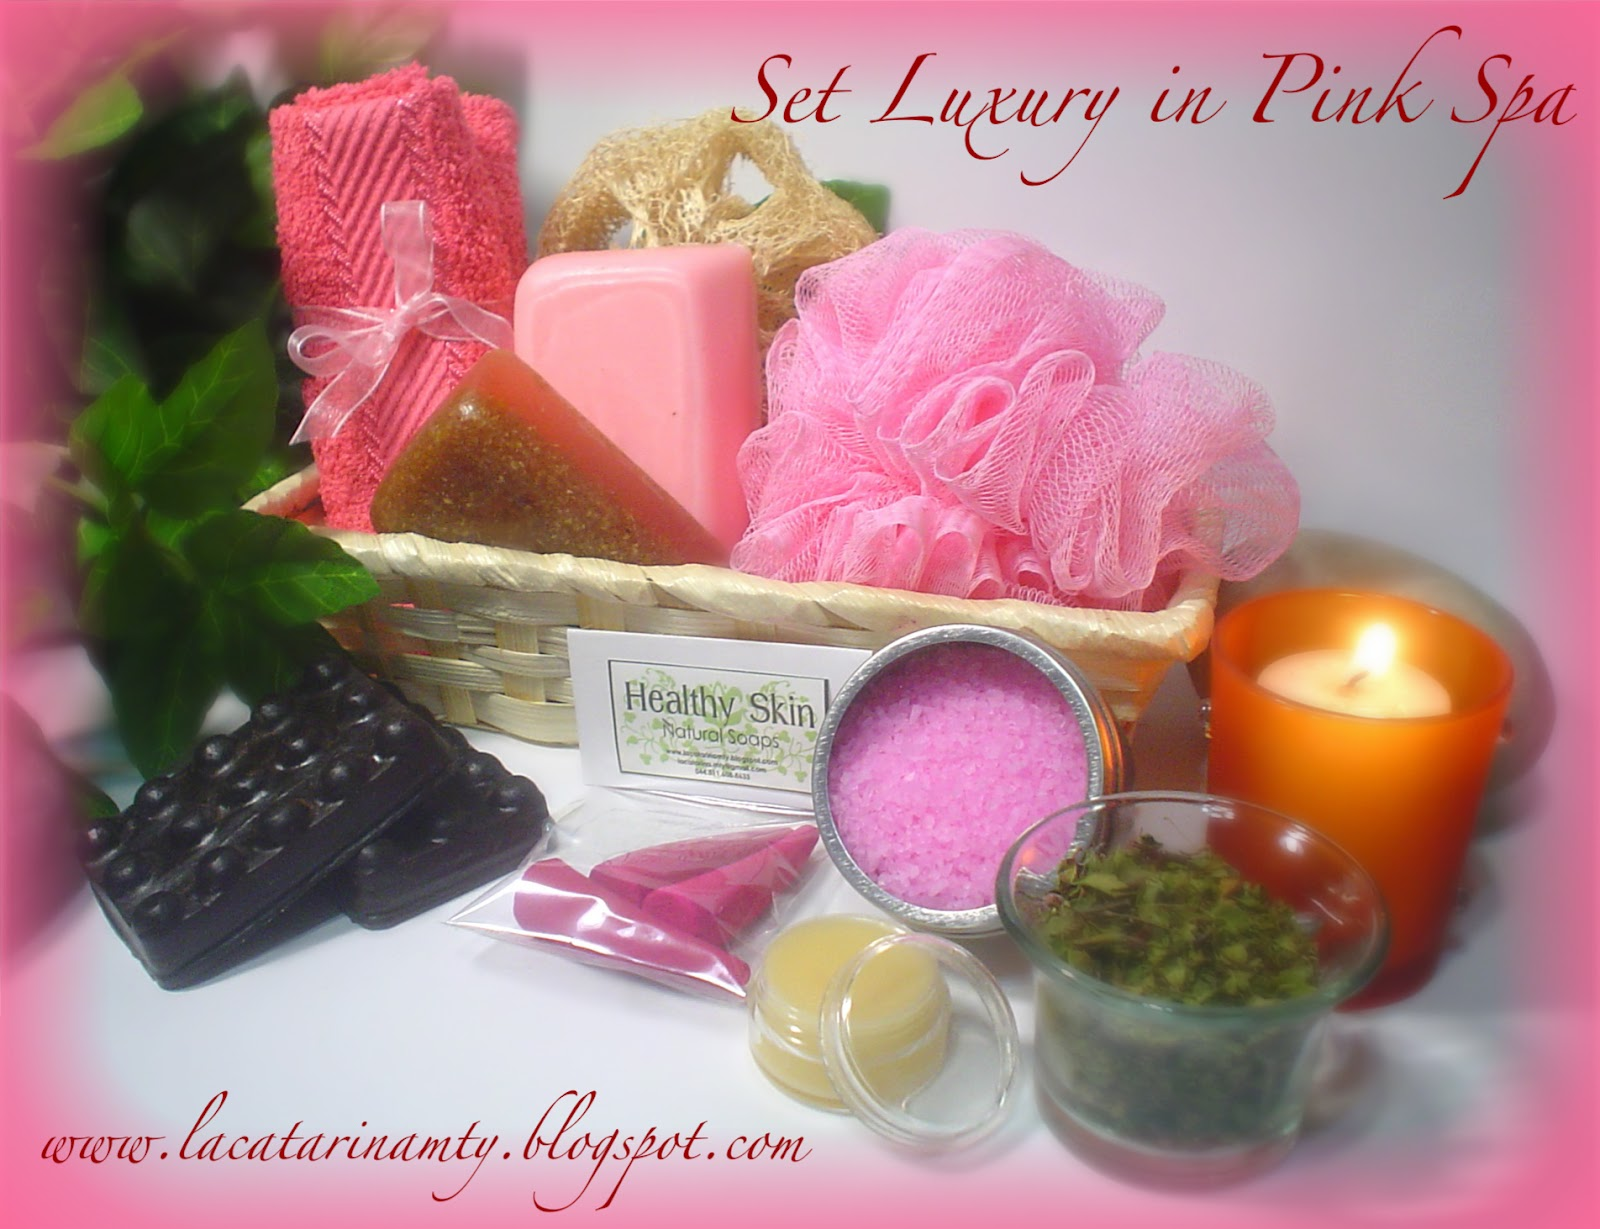 Set De Baño Relajante:SET LUXURY IN PINK SPA